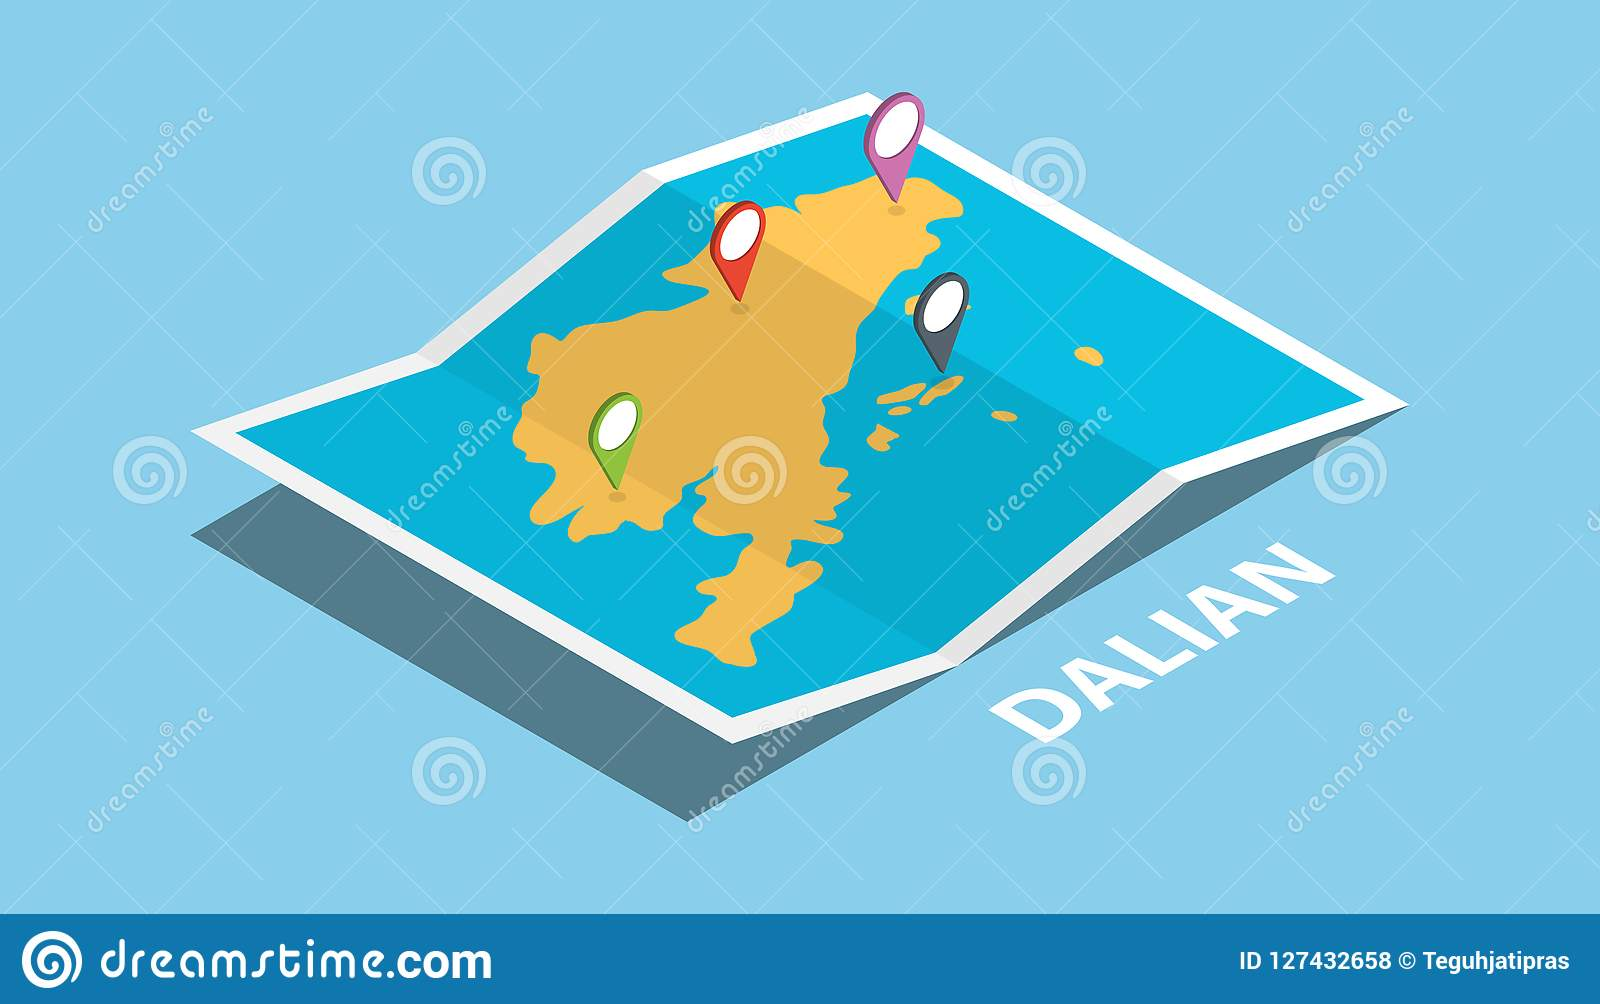 Dalian China Explore Maps Location With Folded Map And Pin Location on